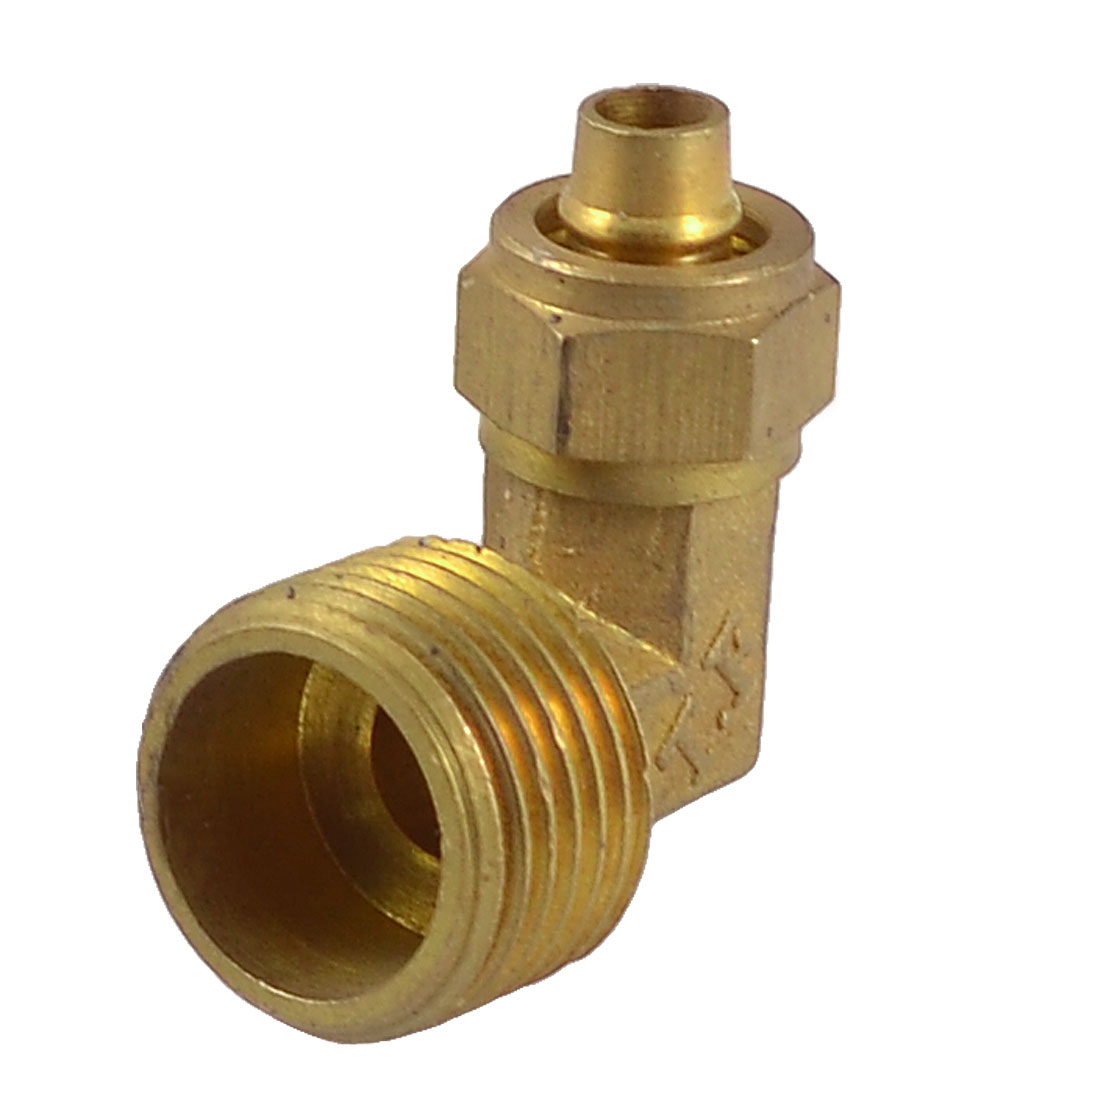 20mm Male Thread 90 Degree Elbow Quick Coupler Connector for 7mmx10mm Tube